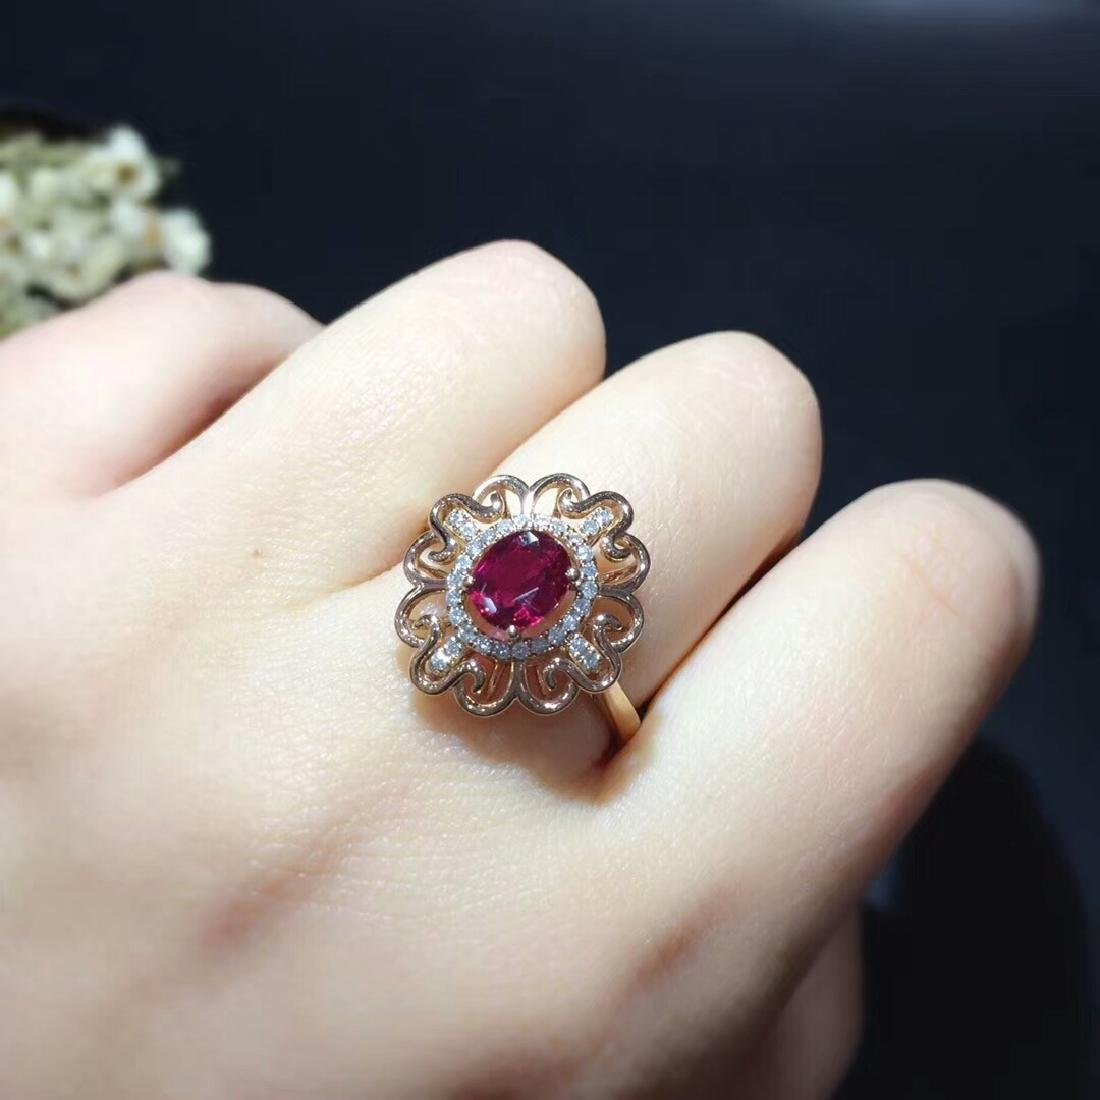 0.95ct Ruby Ring in 18kt white Gold - 5